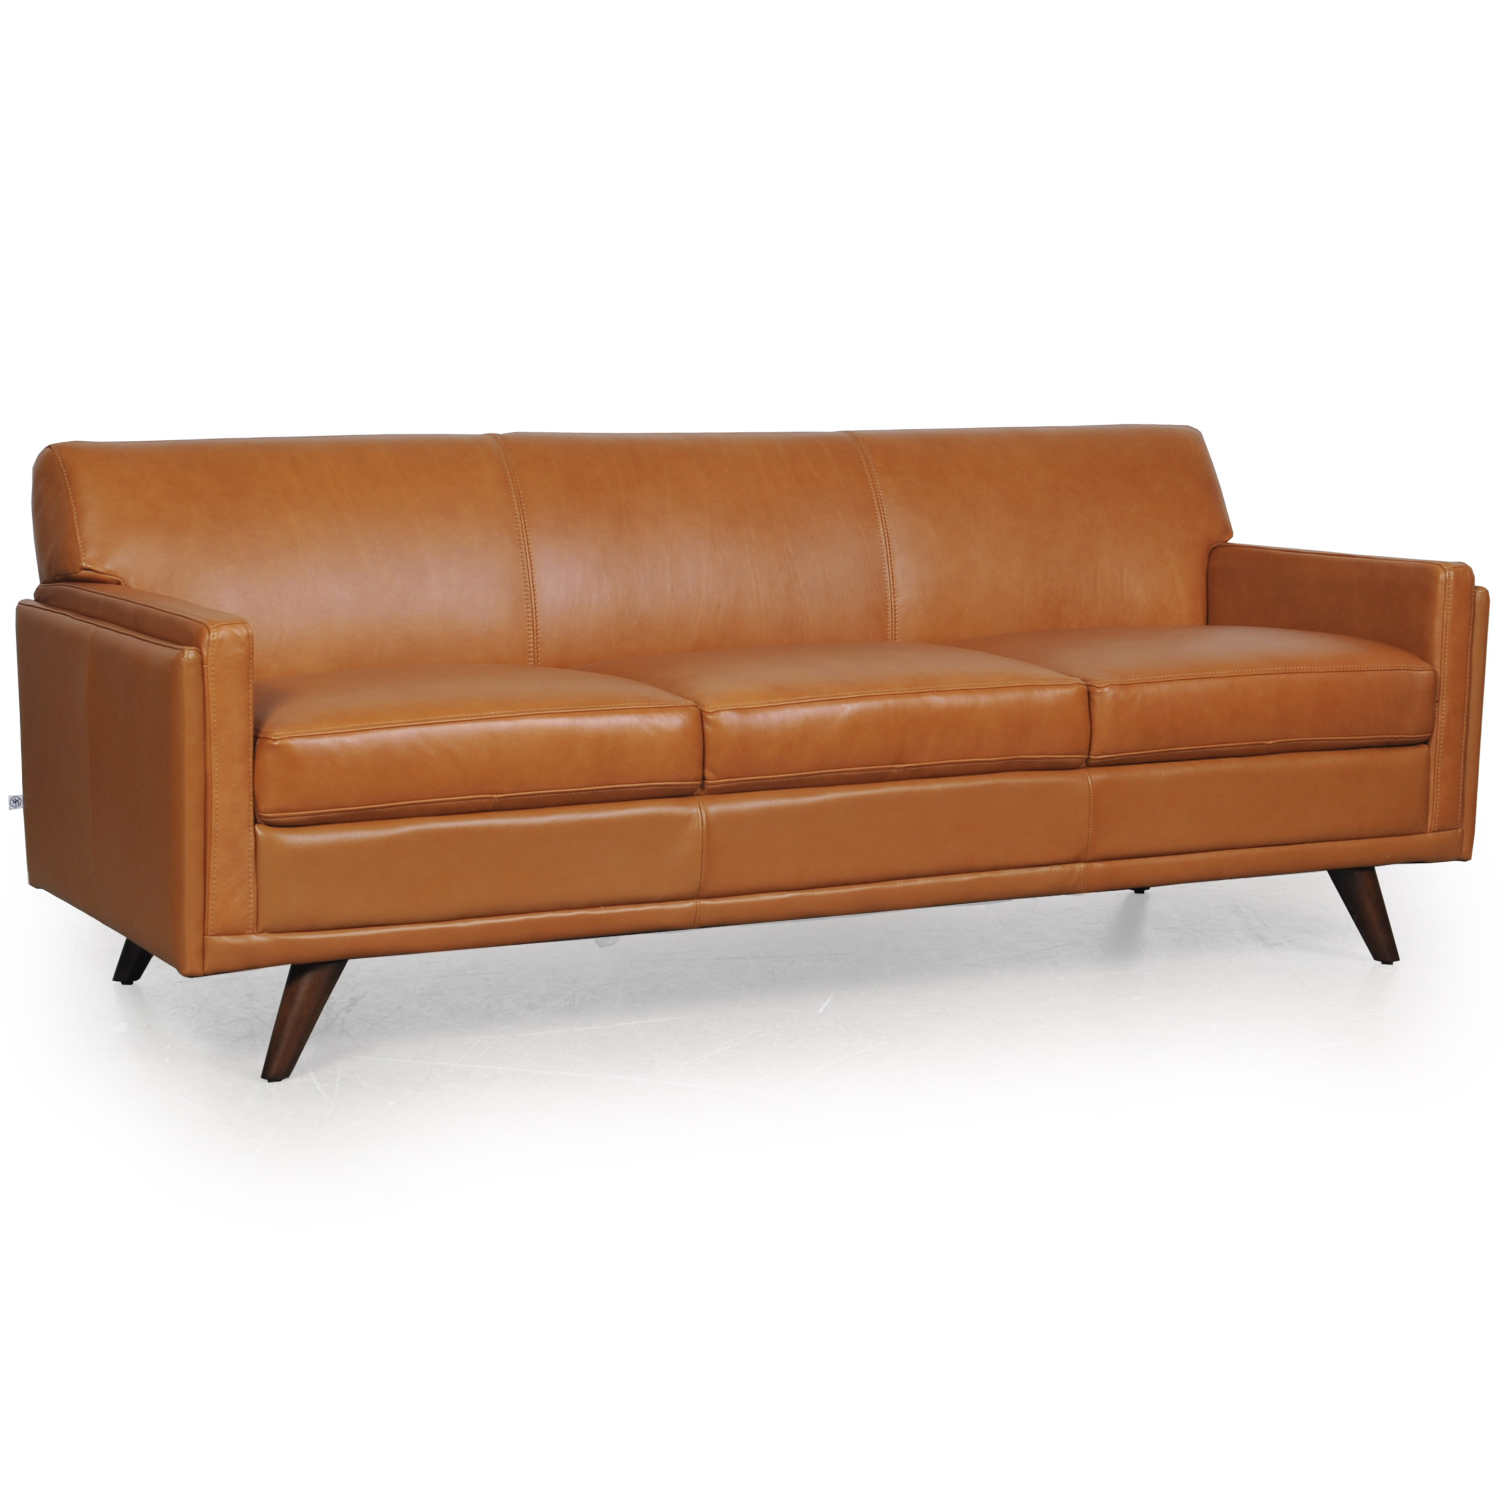 Milo Mid Century Sofa In Tan Leather By Moroni Fine Leather Furniture